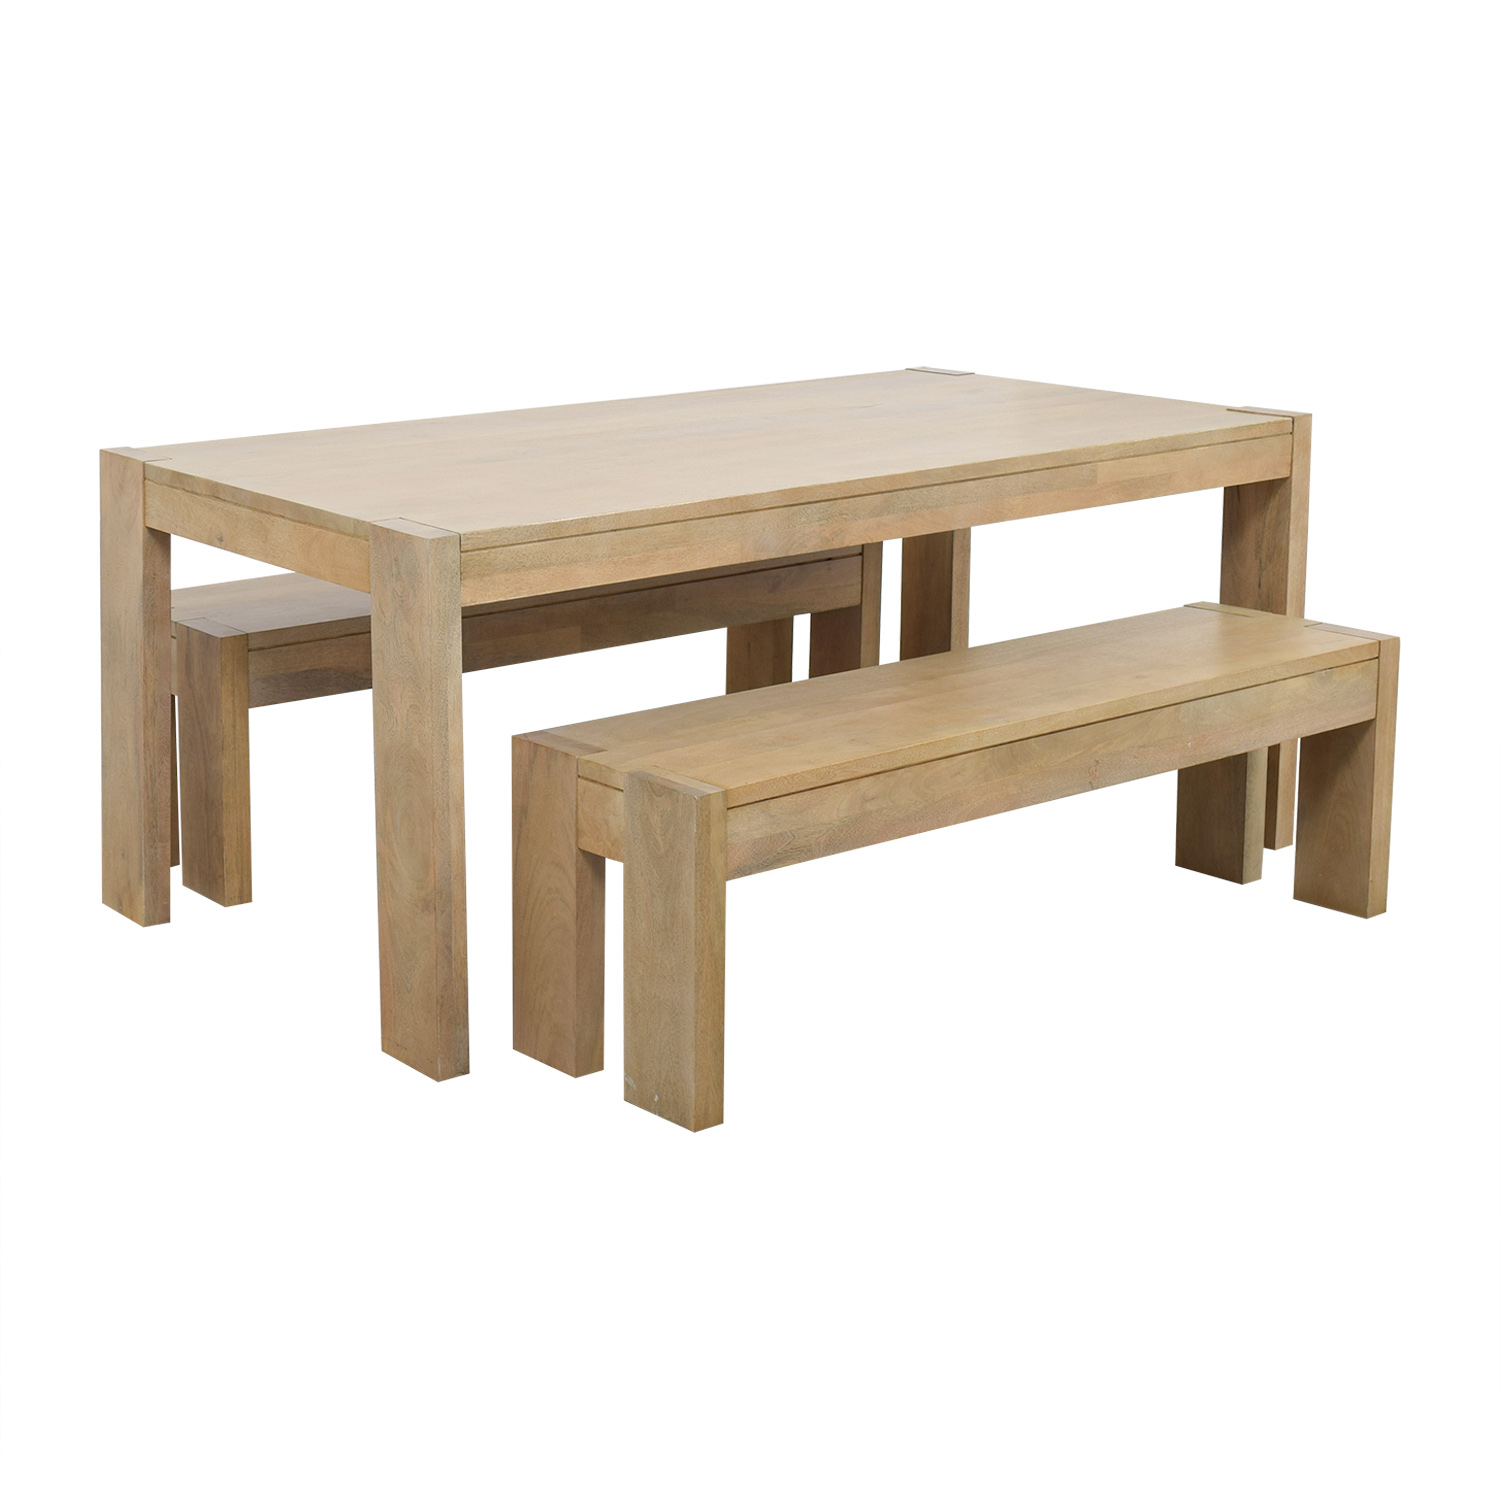 ... West Elm Boerum Dining Table And Benches / Dining Sets ...